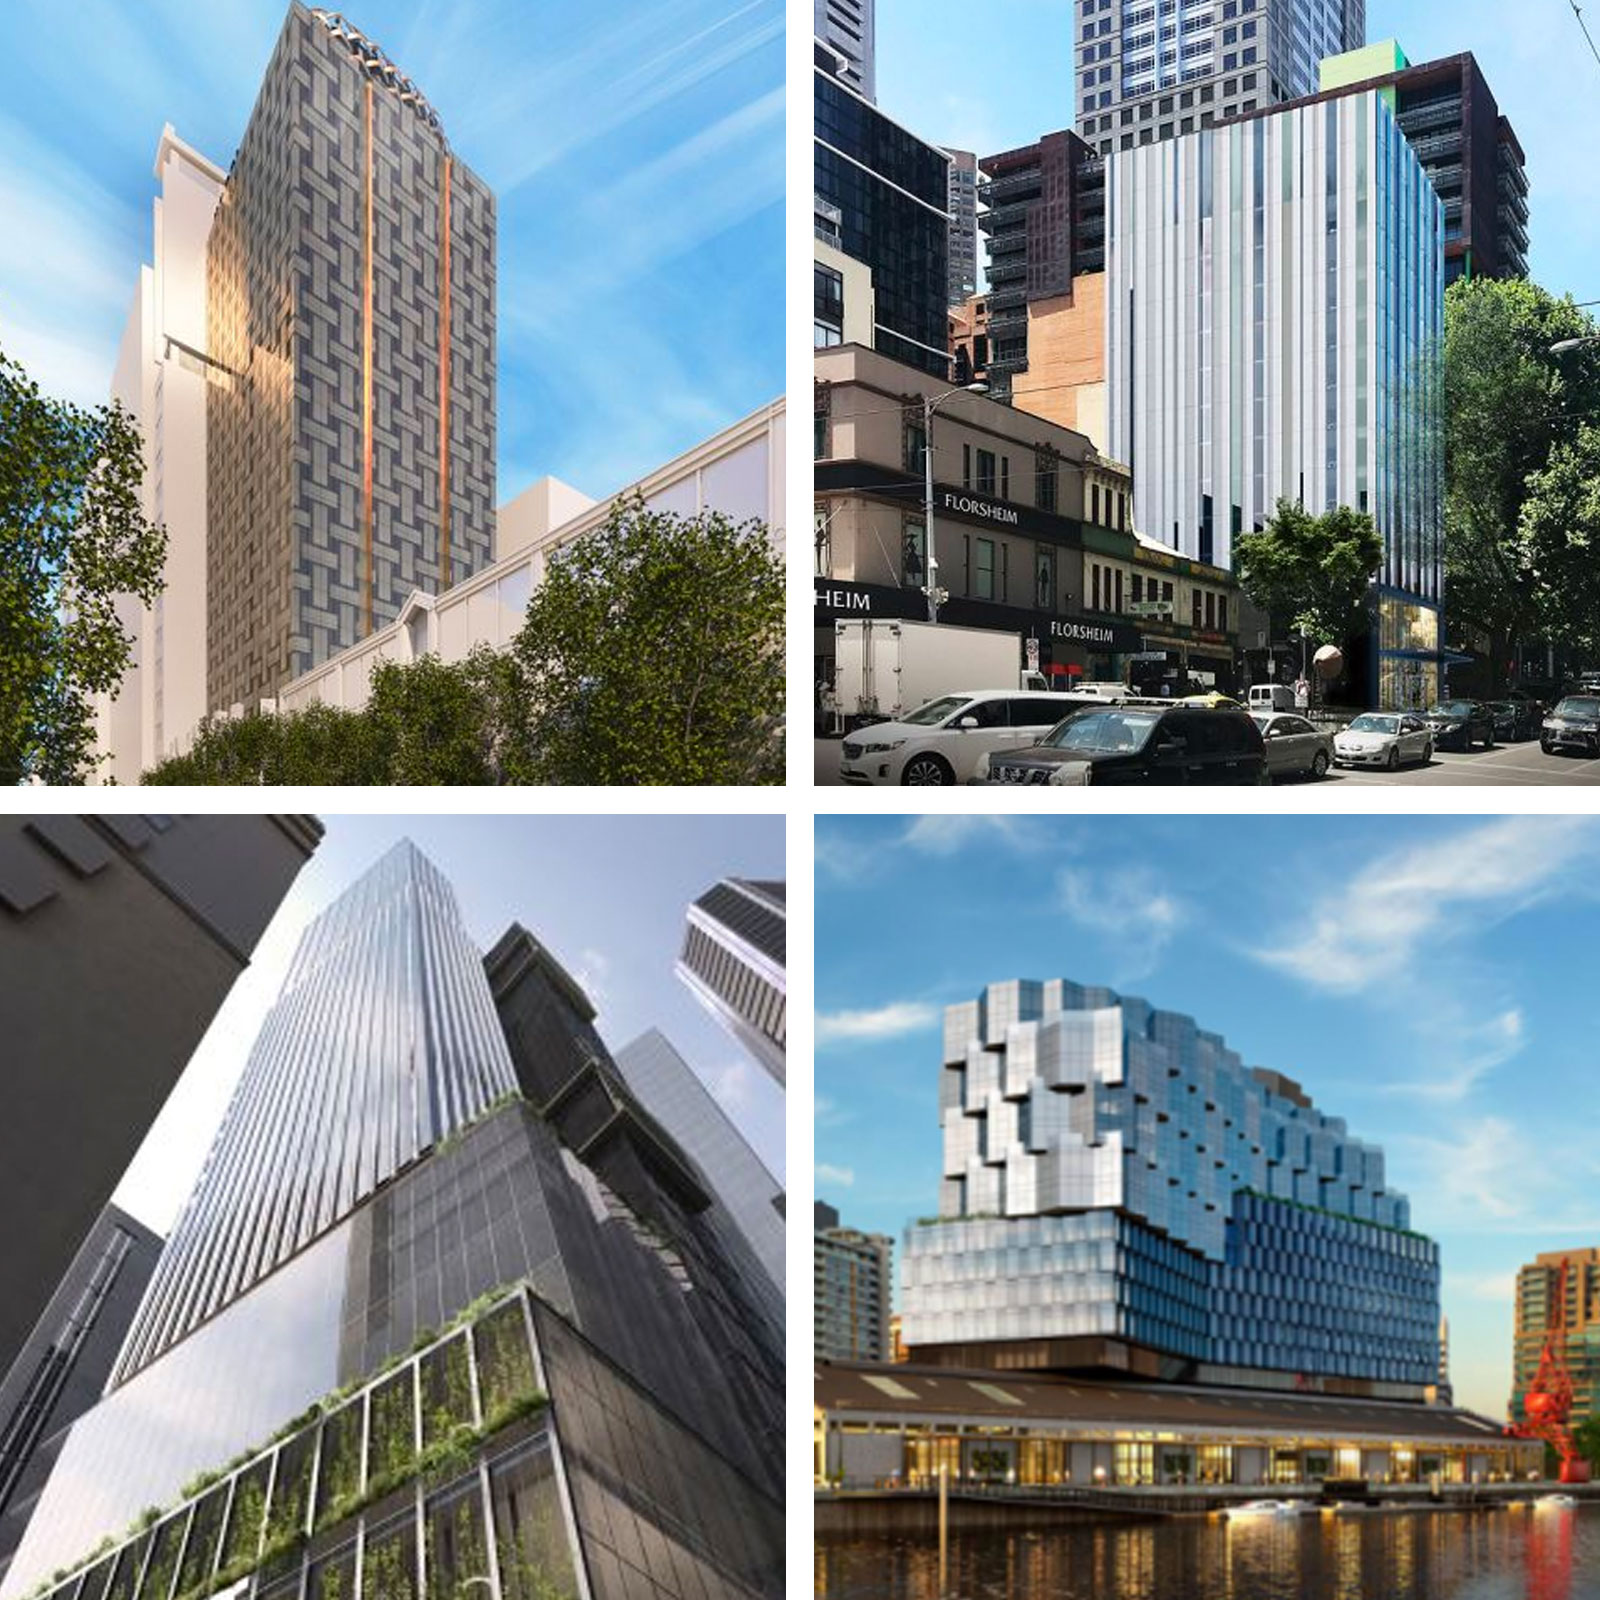 Hotels approved in Melbourne: 475 Flinders Lane (top left), 130 Russell Street (top right), 130 Little Collins Street (bottom left), Seafarers (bottom right).